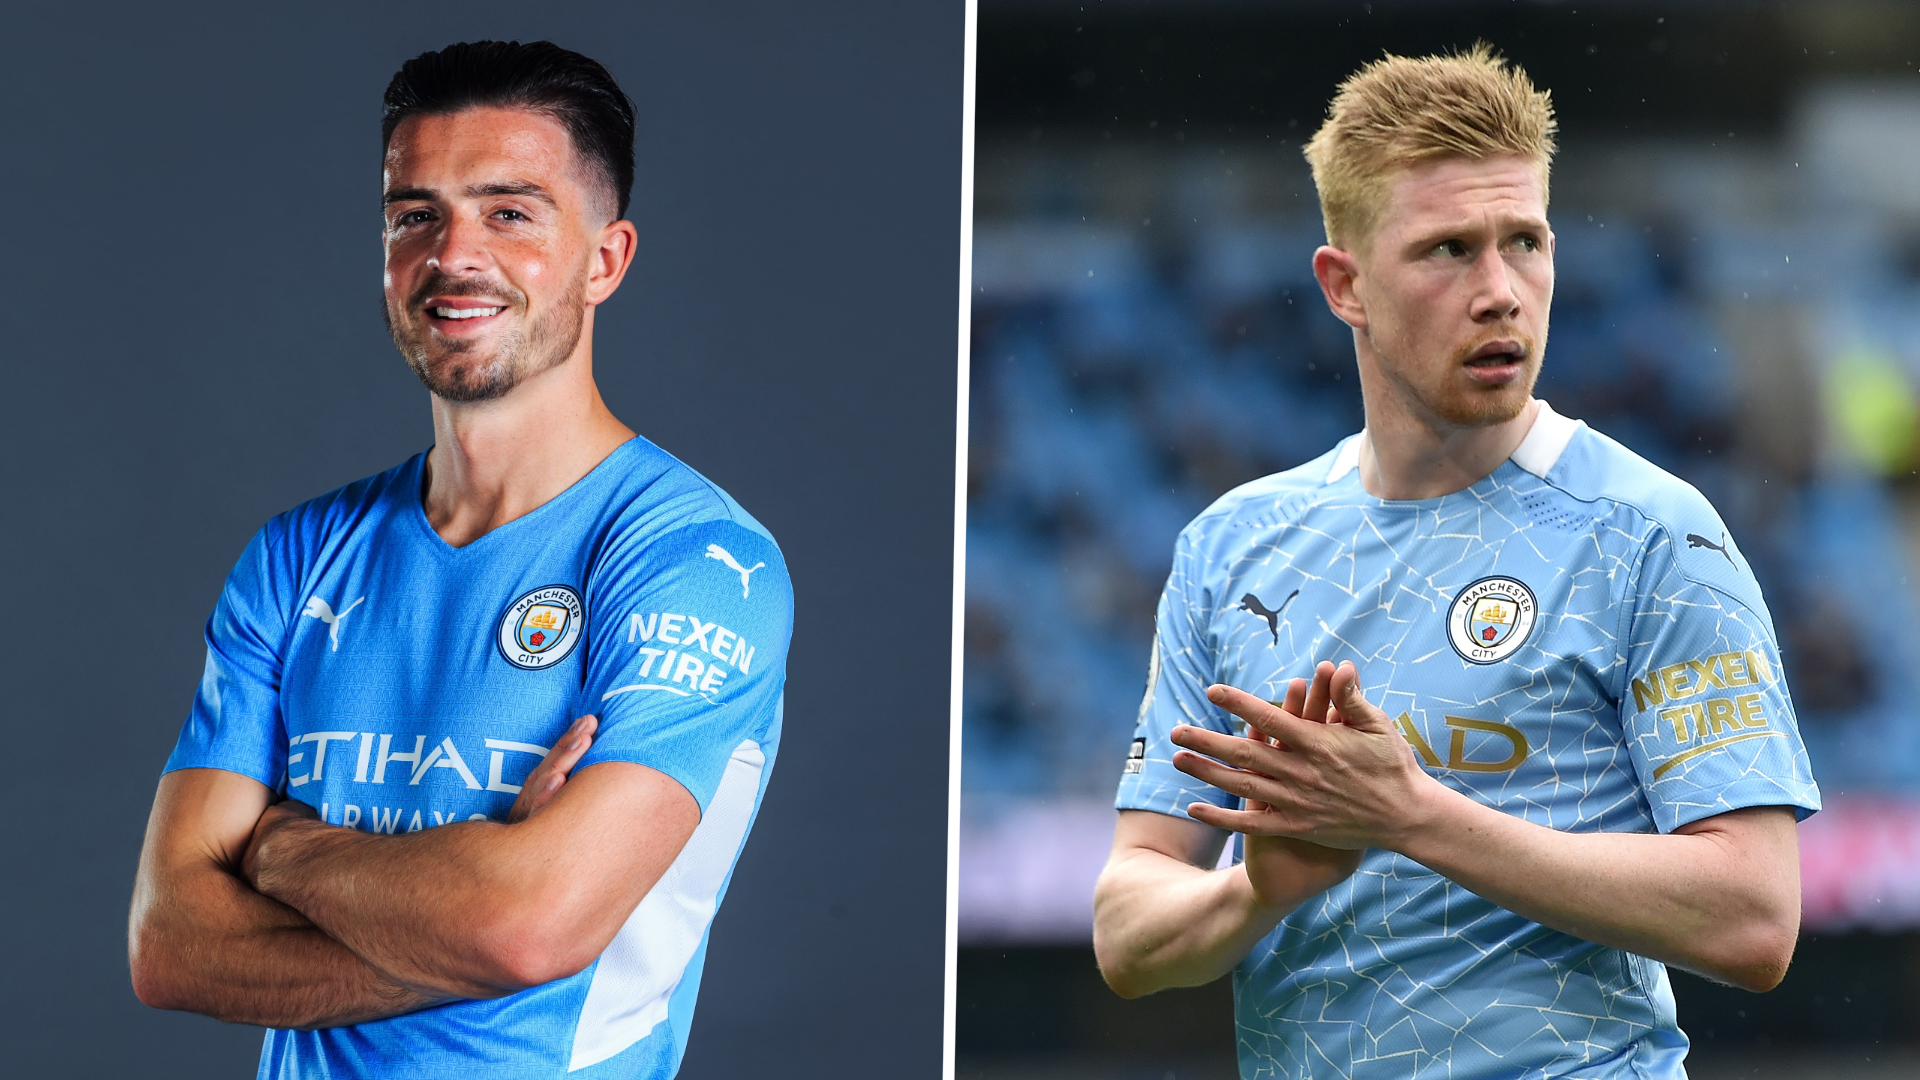 Grealish: De Bruyne is world's best behind Ronaldo and Messi